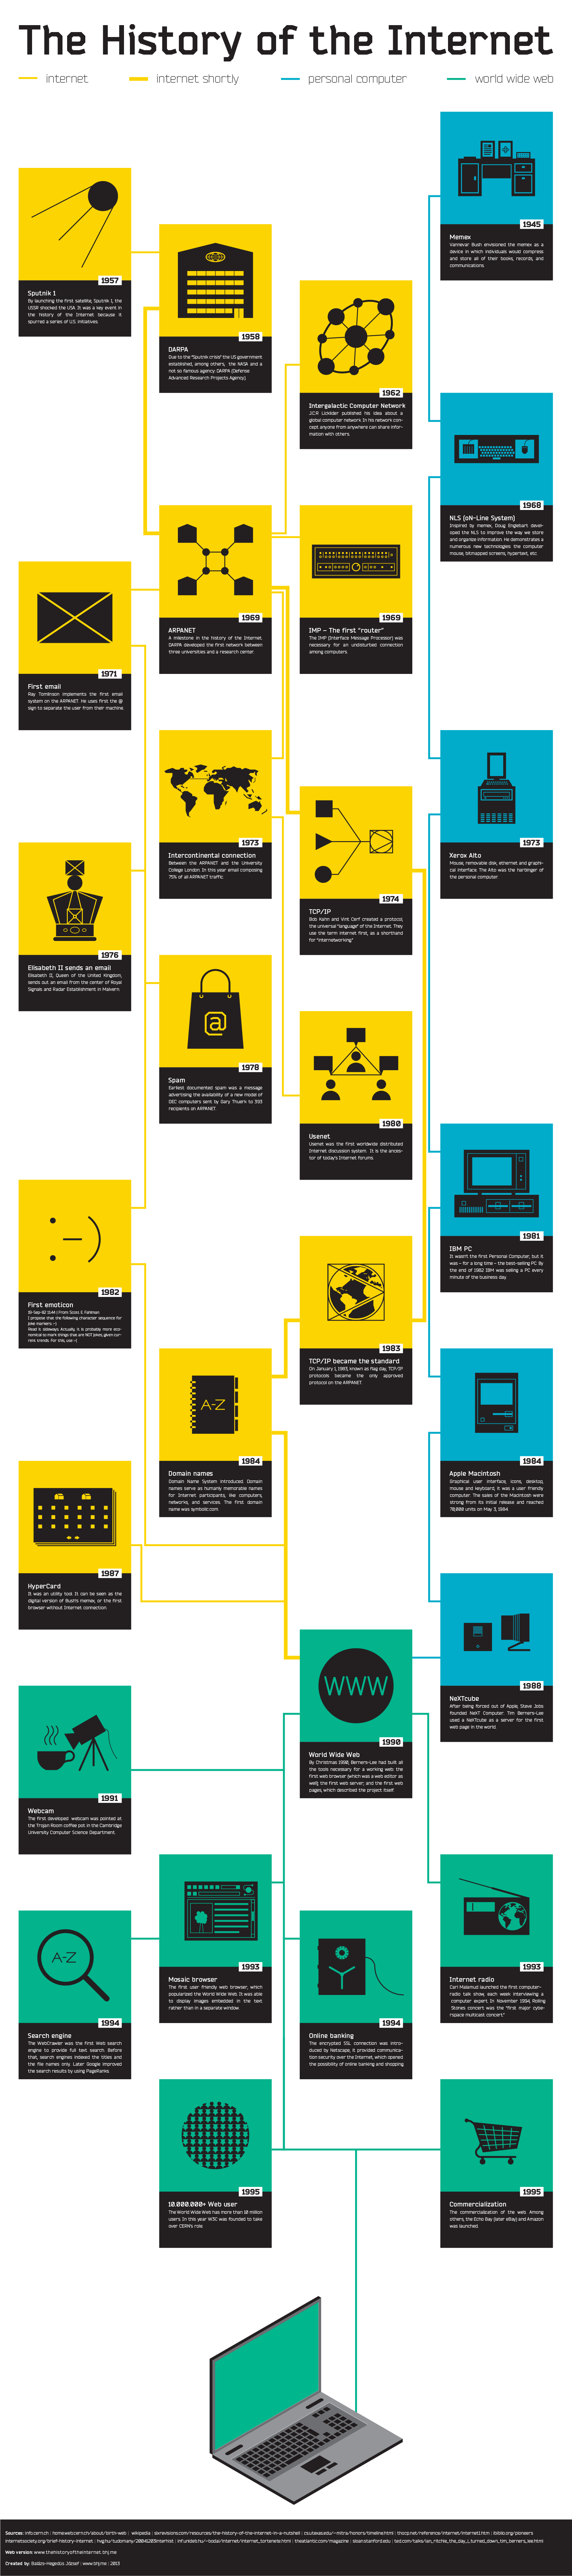 The History Of The Internet - Infographic